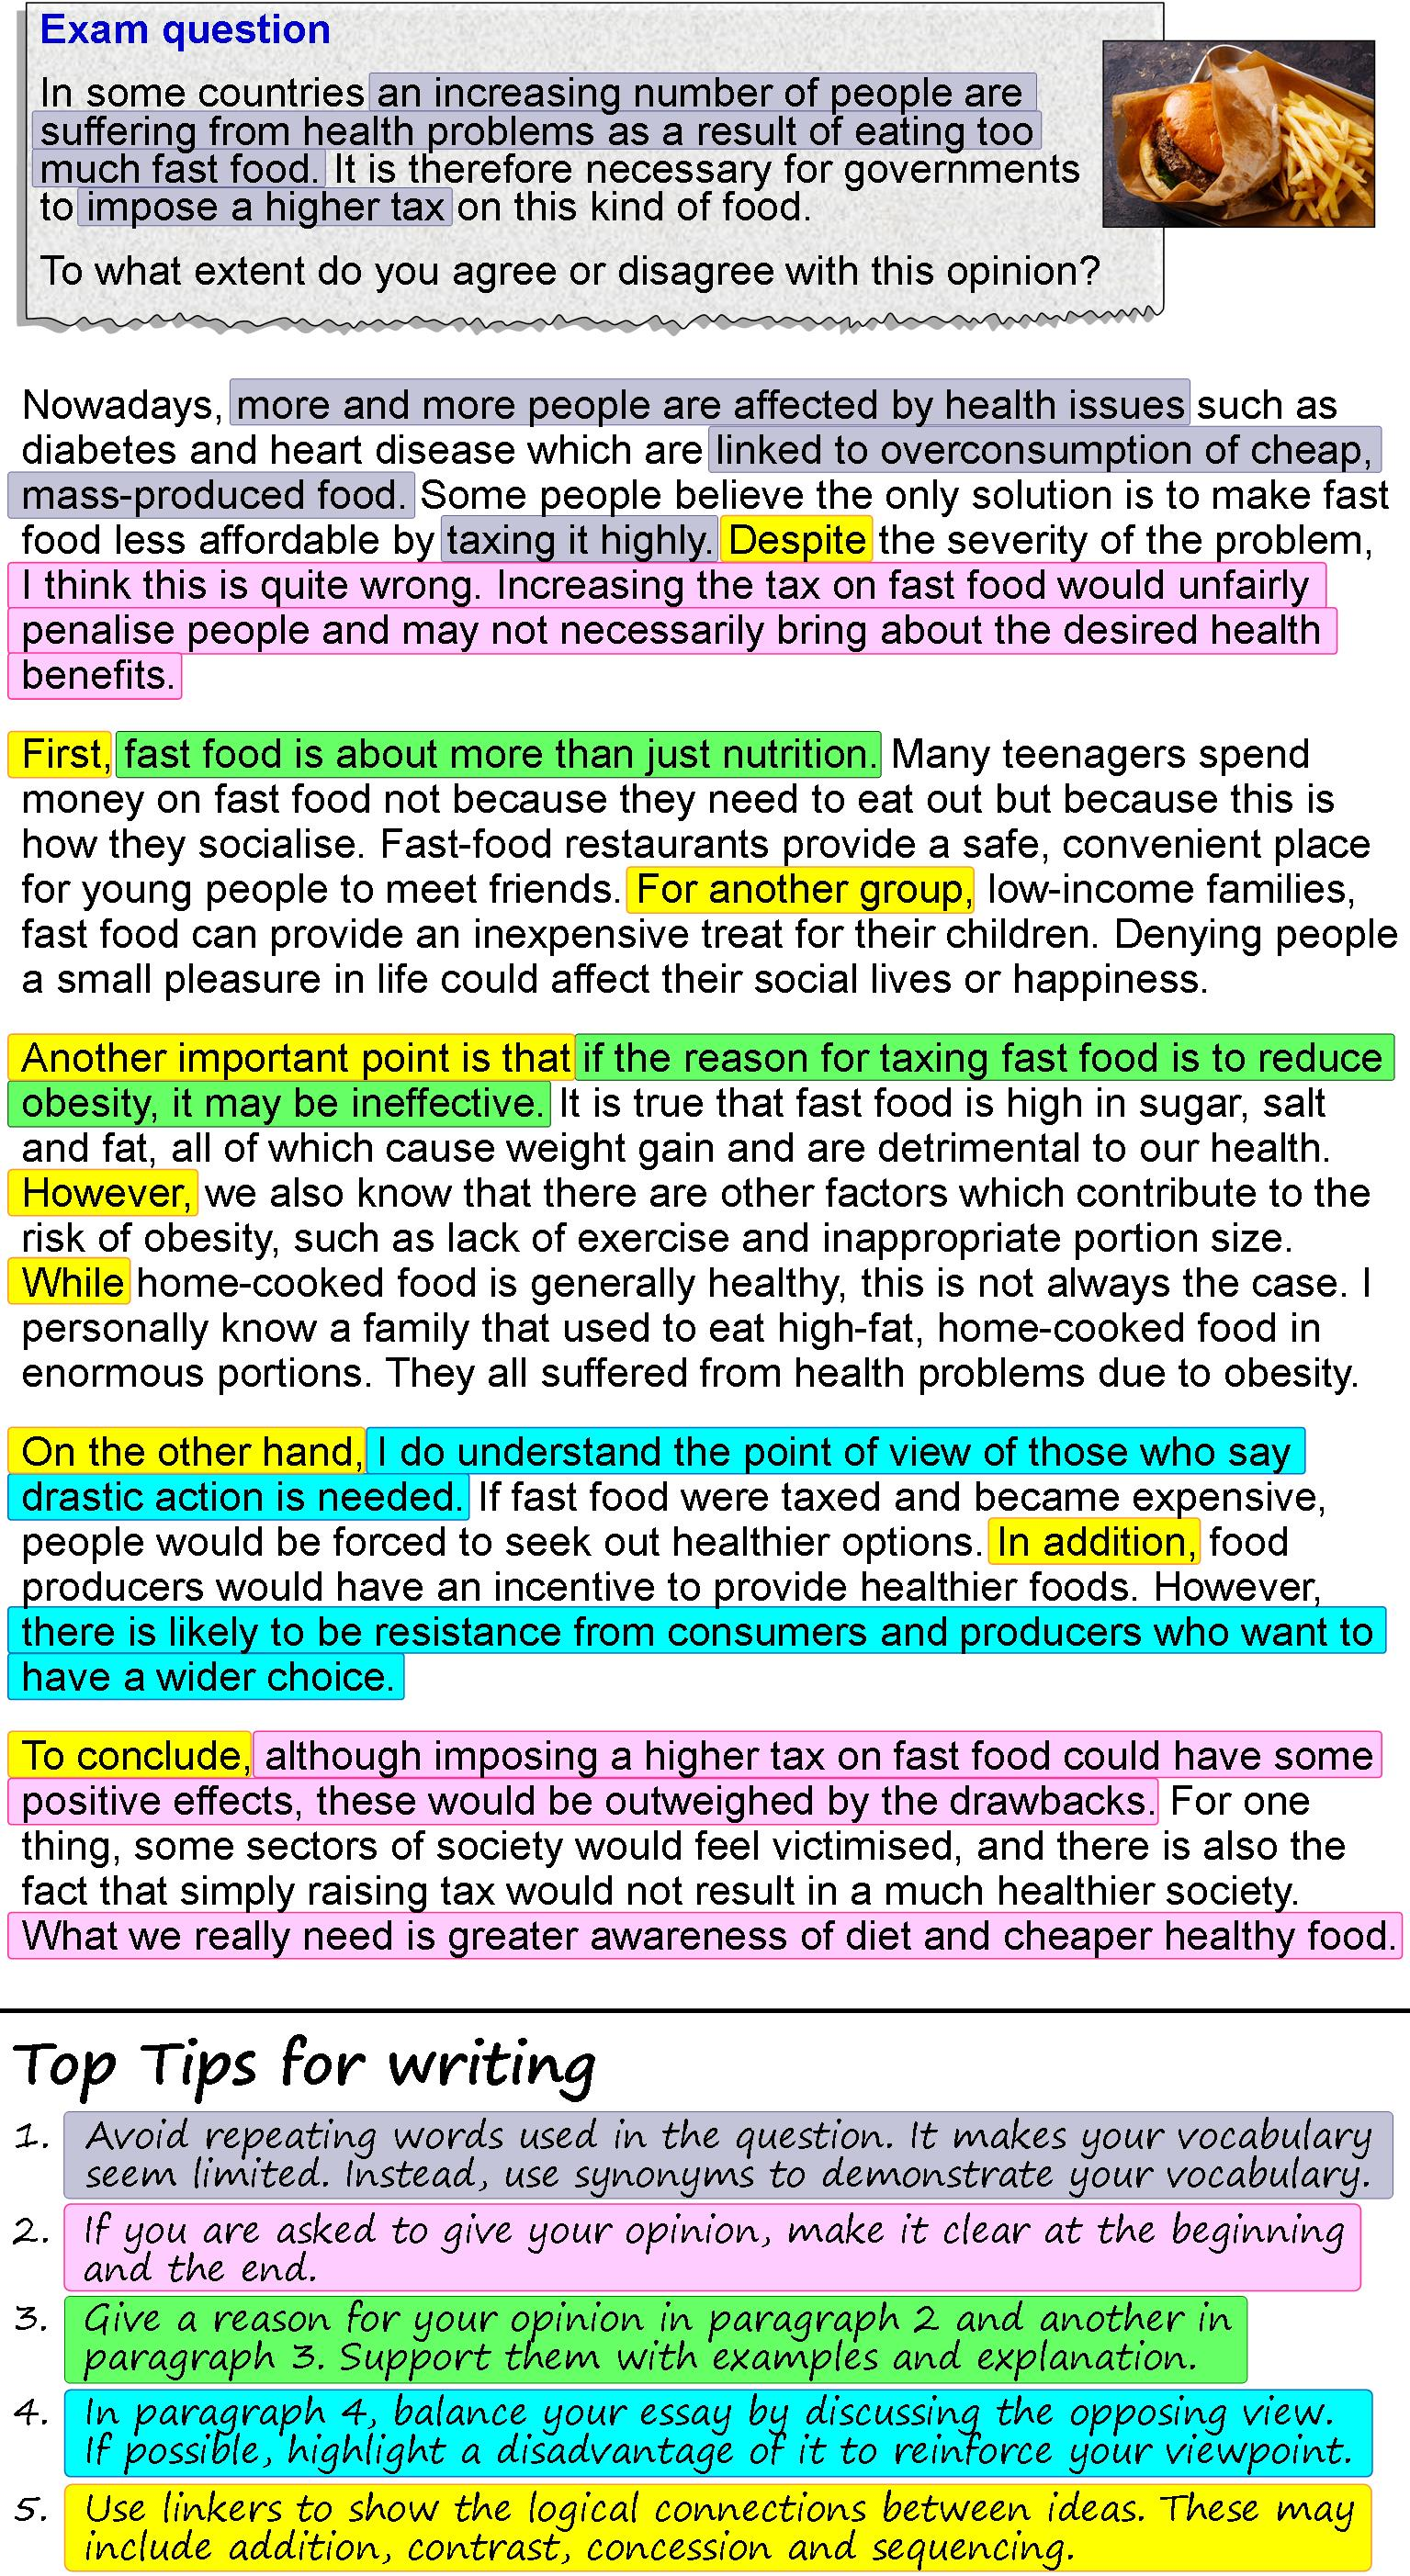 002 Essay Example Opinion An About Fast Food 4 Magnificent Prompts 6th Grade Examples 3rd Full